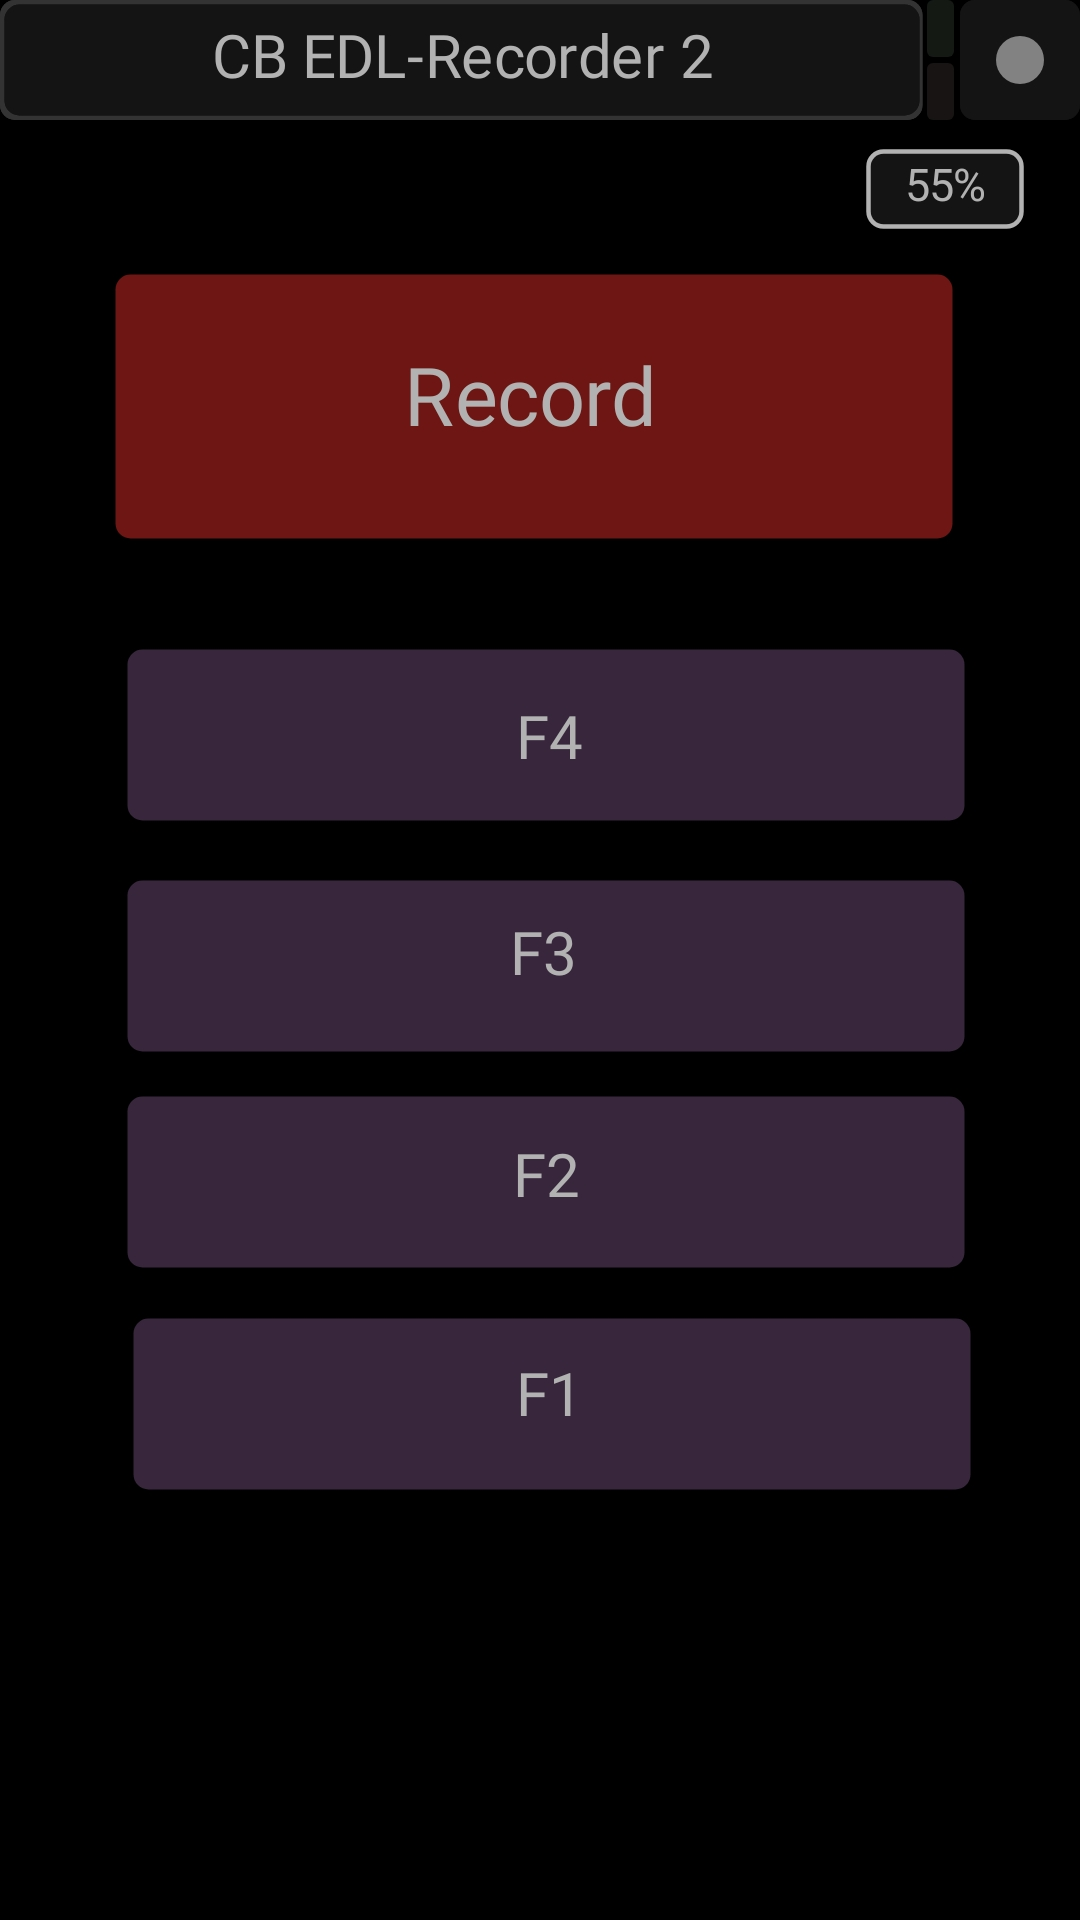 Remote Control From your phone or tablet! - Remote the Record and four Mark keys using this App.The Function keys display the labels defined in the EDL recorder App.install the TouchOsc App ( $5 or 5 Euro) and download the layout from the Software tab below.